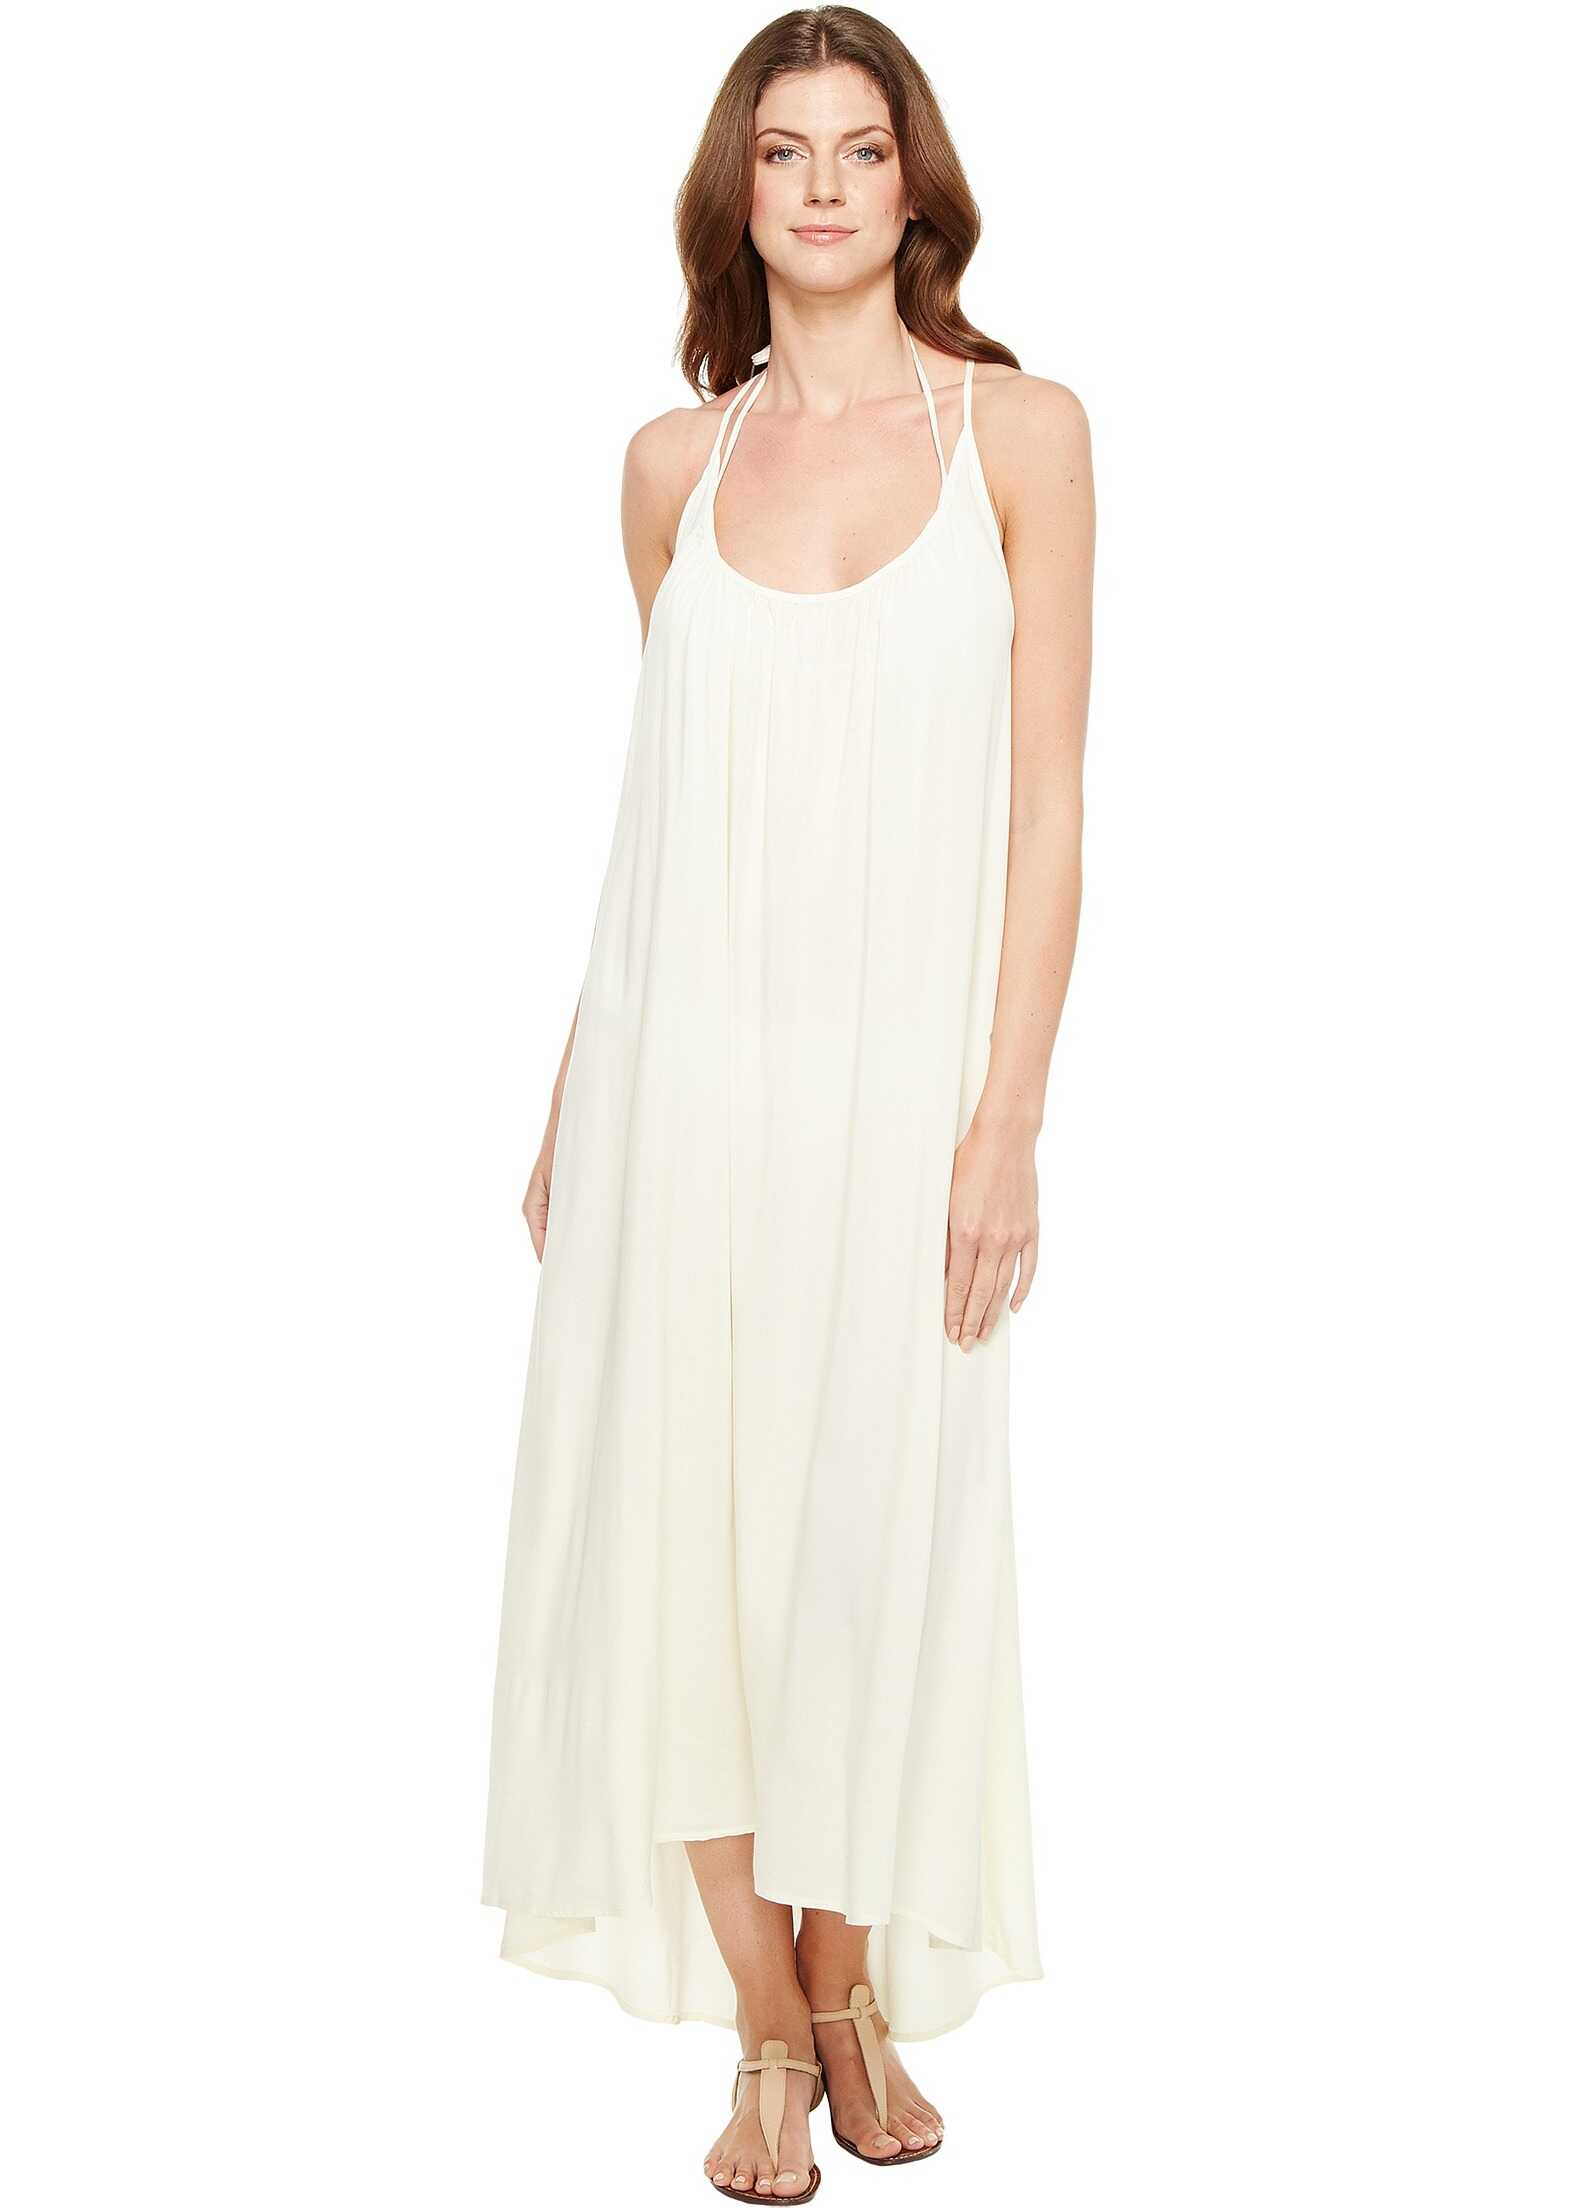 Vince Camuto Fiji Solids Racerback Maxi Dress Cover-Up Shell